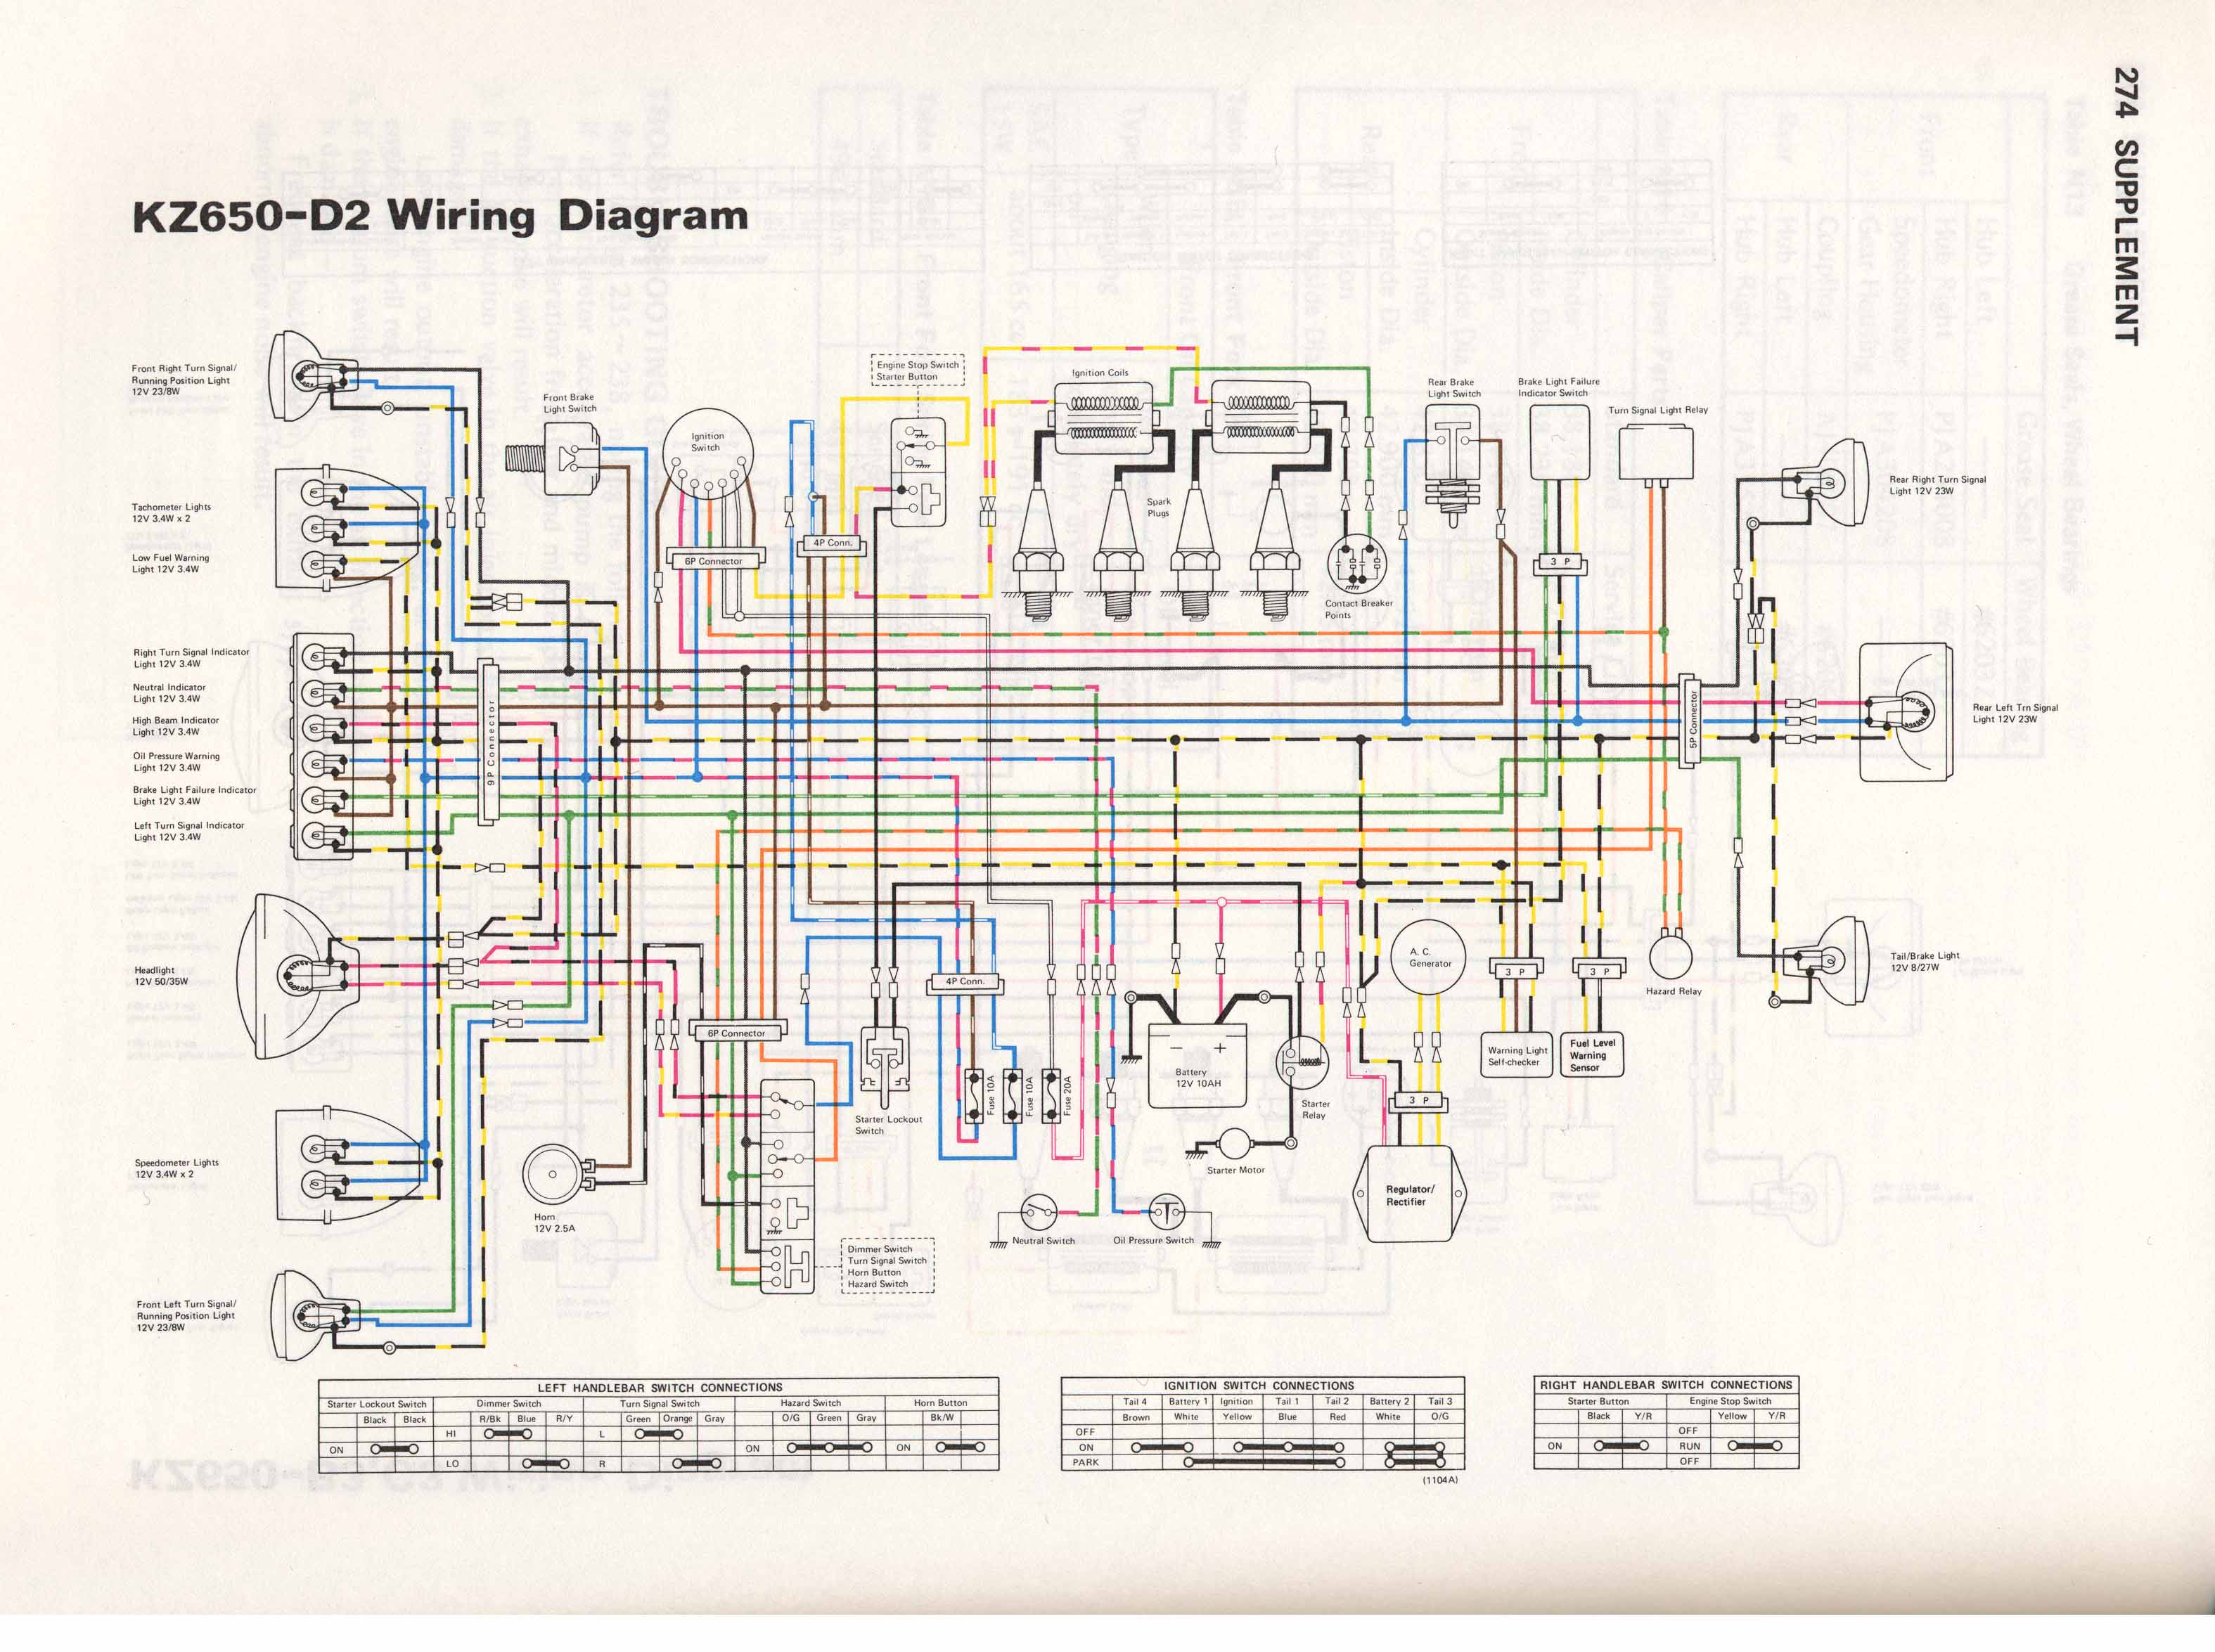 Kawasaki Kz550 Easy Wiring Diagram Reinvent Your Gpz 550 Kz650 Info Diagrams Rh 1981 1982 Kz1300